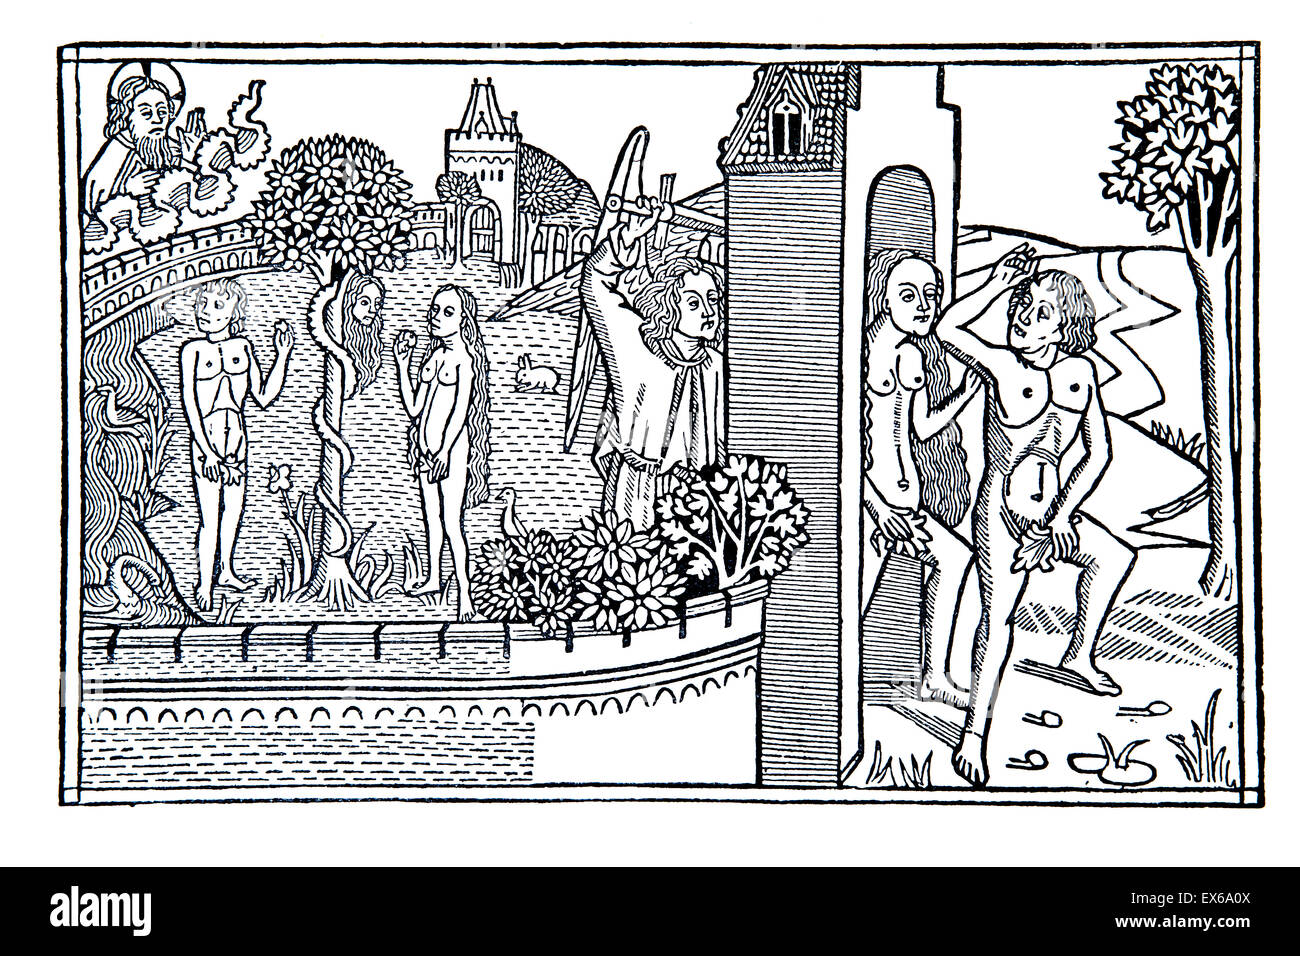 expulsion of Adam and Eve from the garden of Eden, woodcut from 1489 German Bible - Stock Image